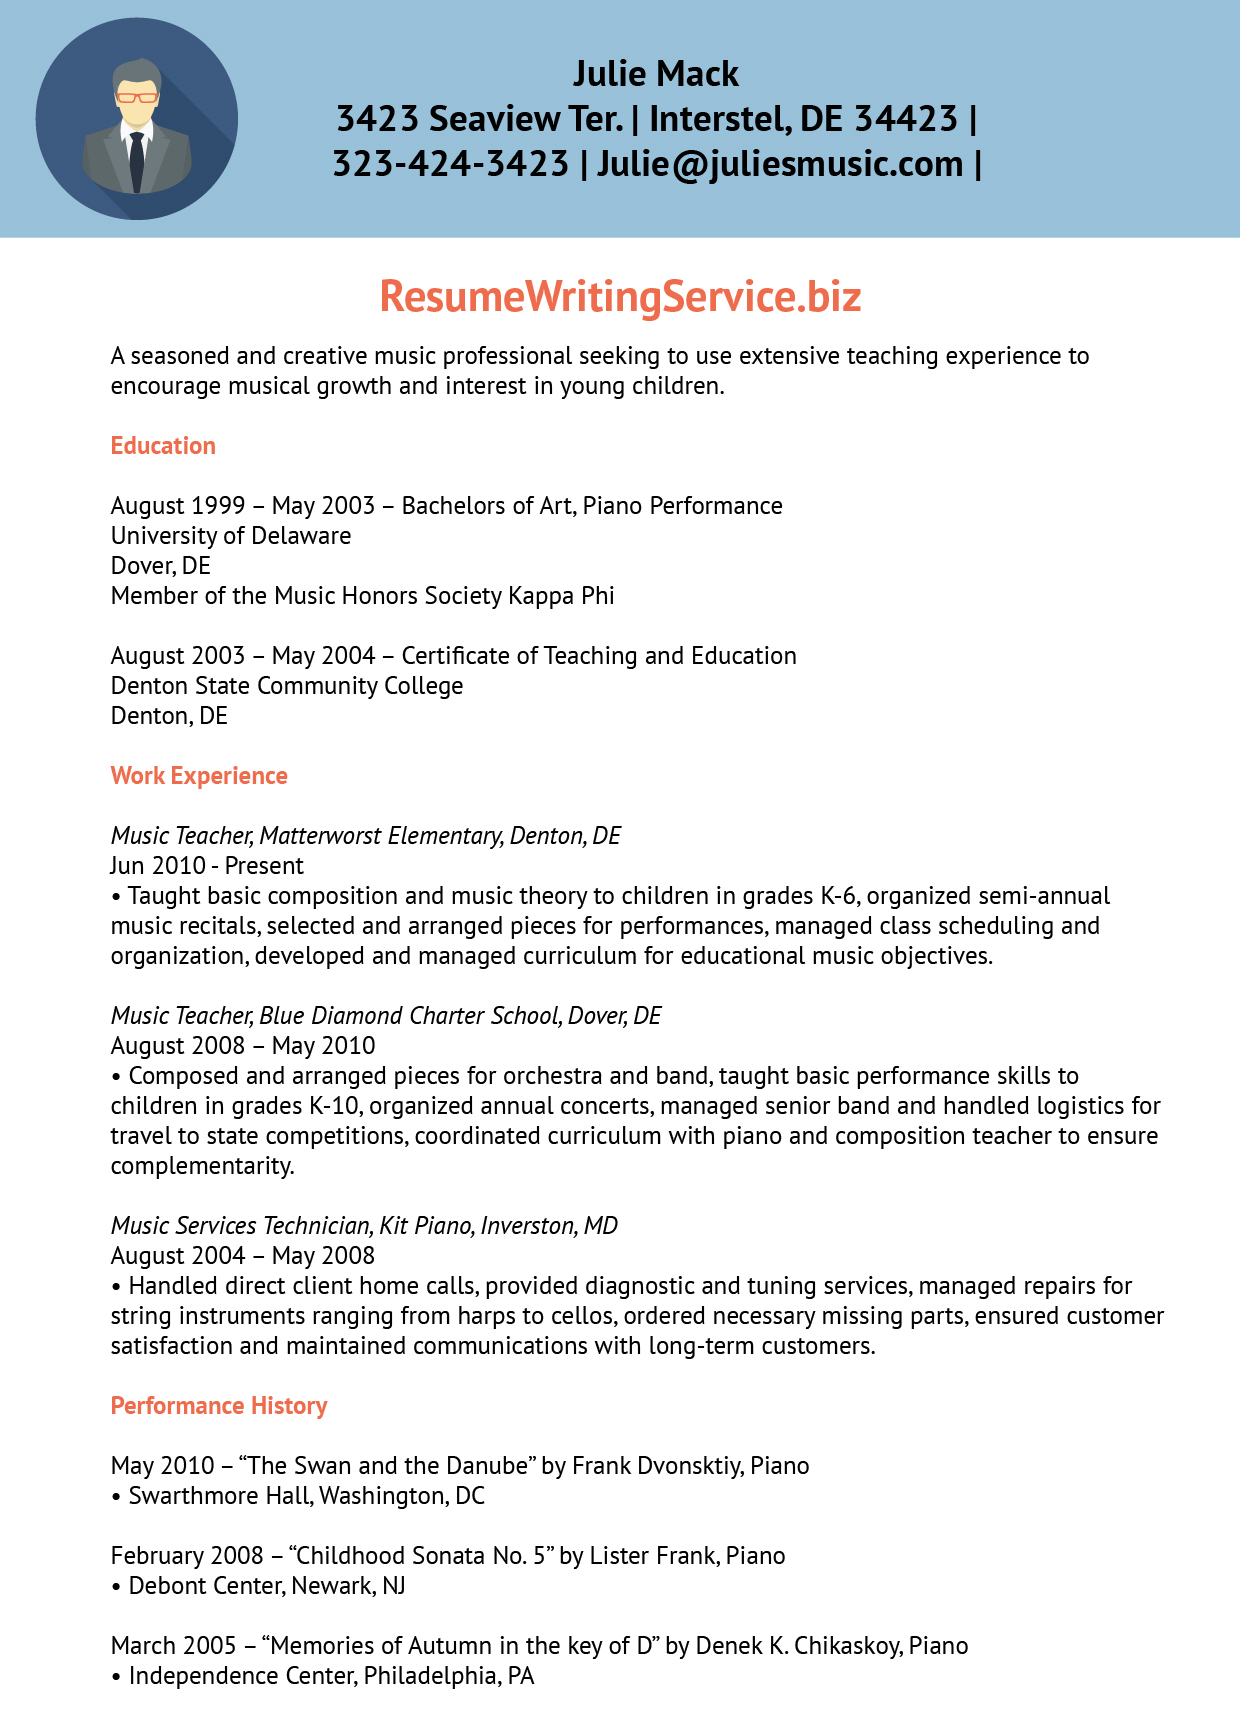 Professional Resume Writing Services Plus...